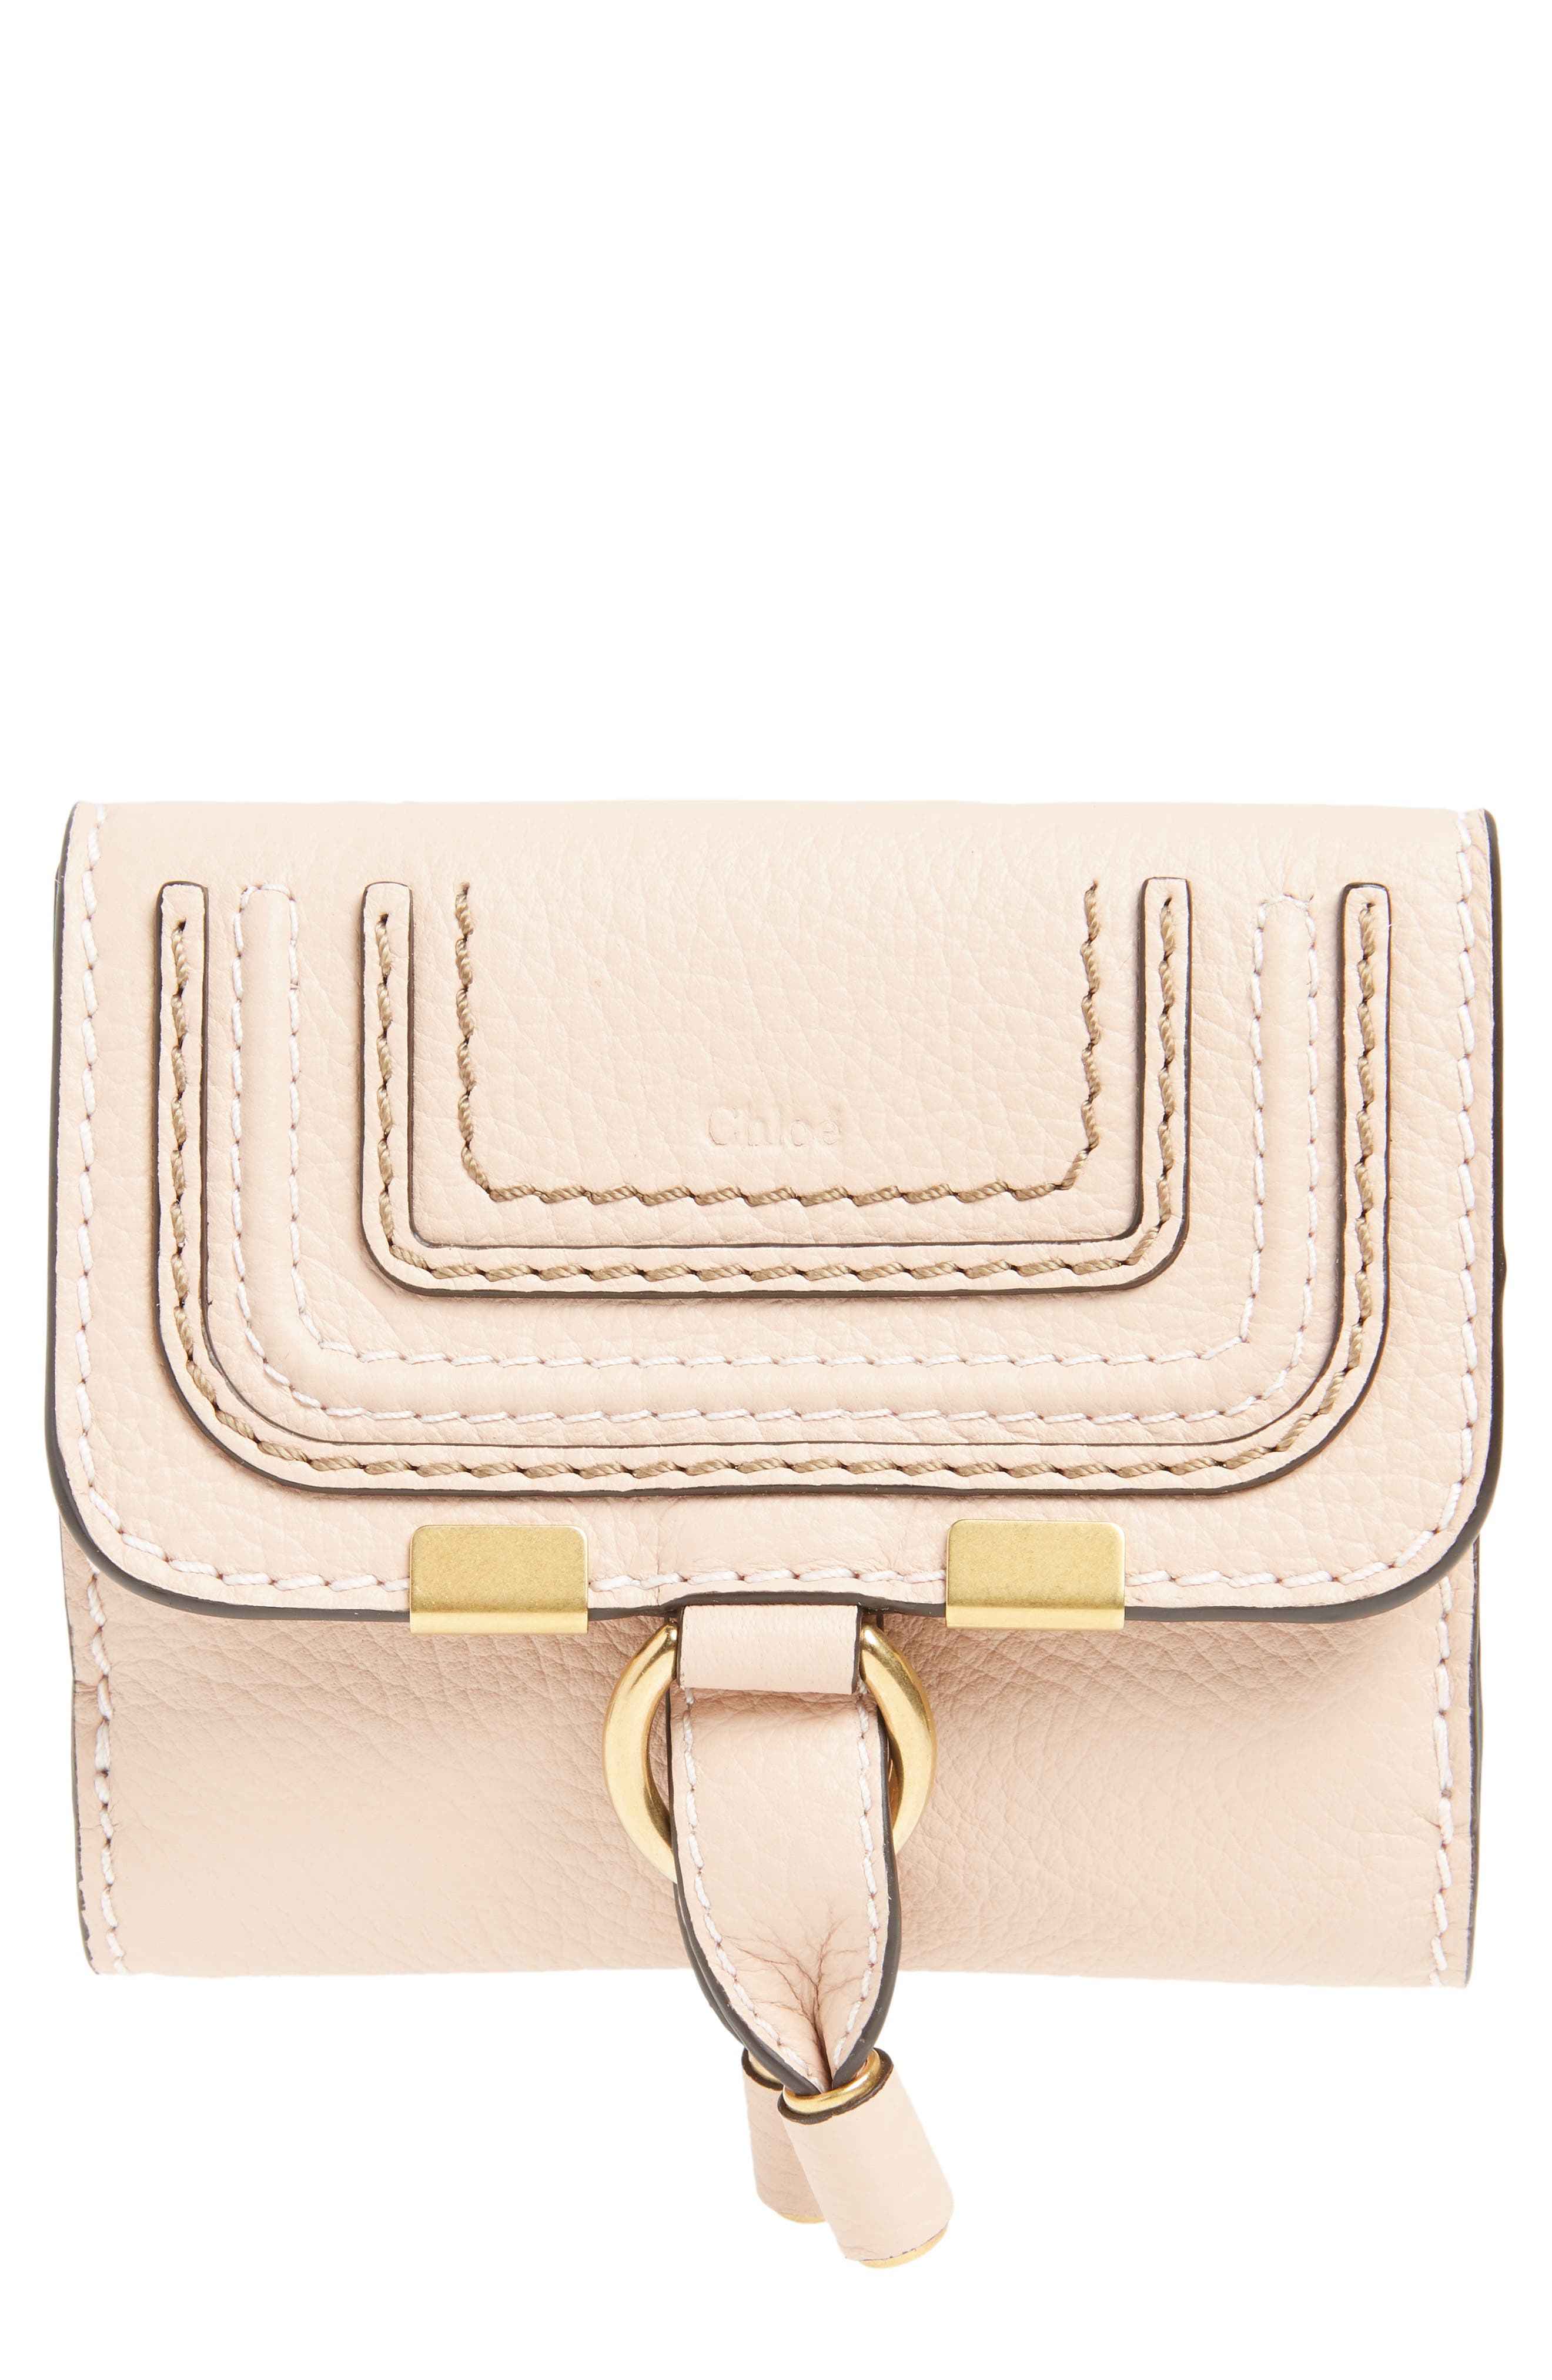 'Marcie' French Wallet,                         Main,                         color, Blush Nude